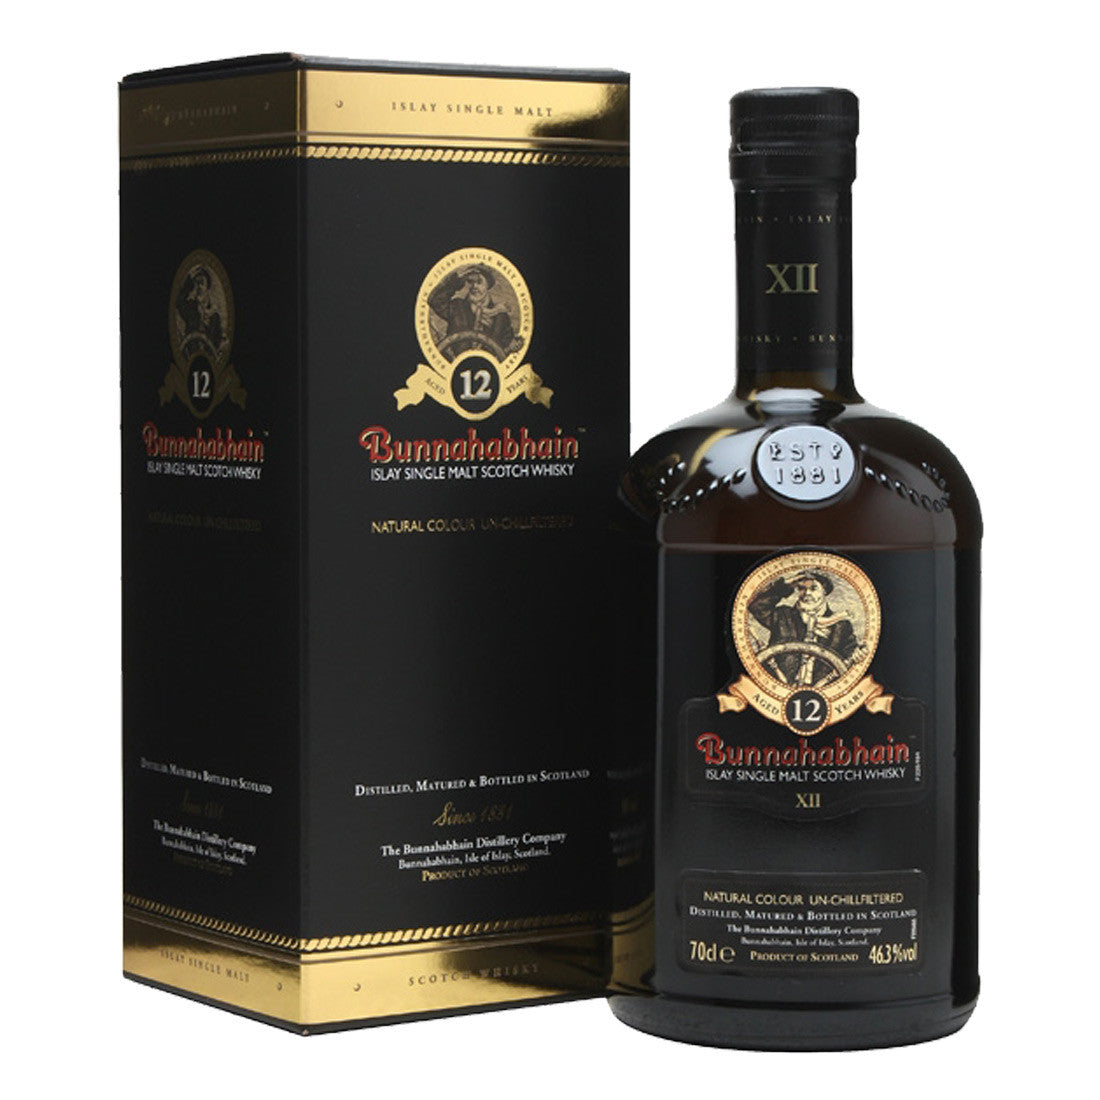 Bunnahabhain 12 Years Unchillfiltered Islay Single Malt Scotch Whisky - 700ml Whiskey - Drinkka Alcohol Delivery Best Whiskey Gin Beer Vodkas and more in Makati and Manila | Bevtools Bar and Beverage Tools